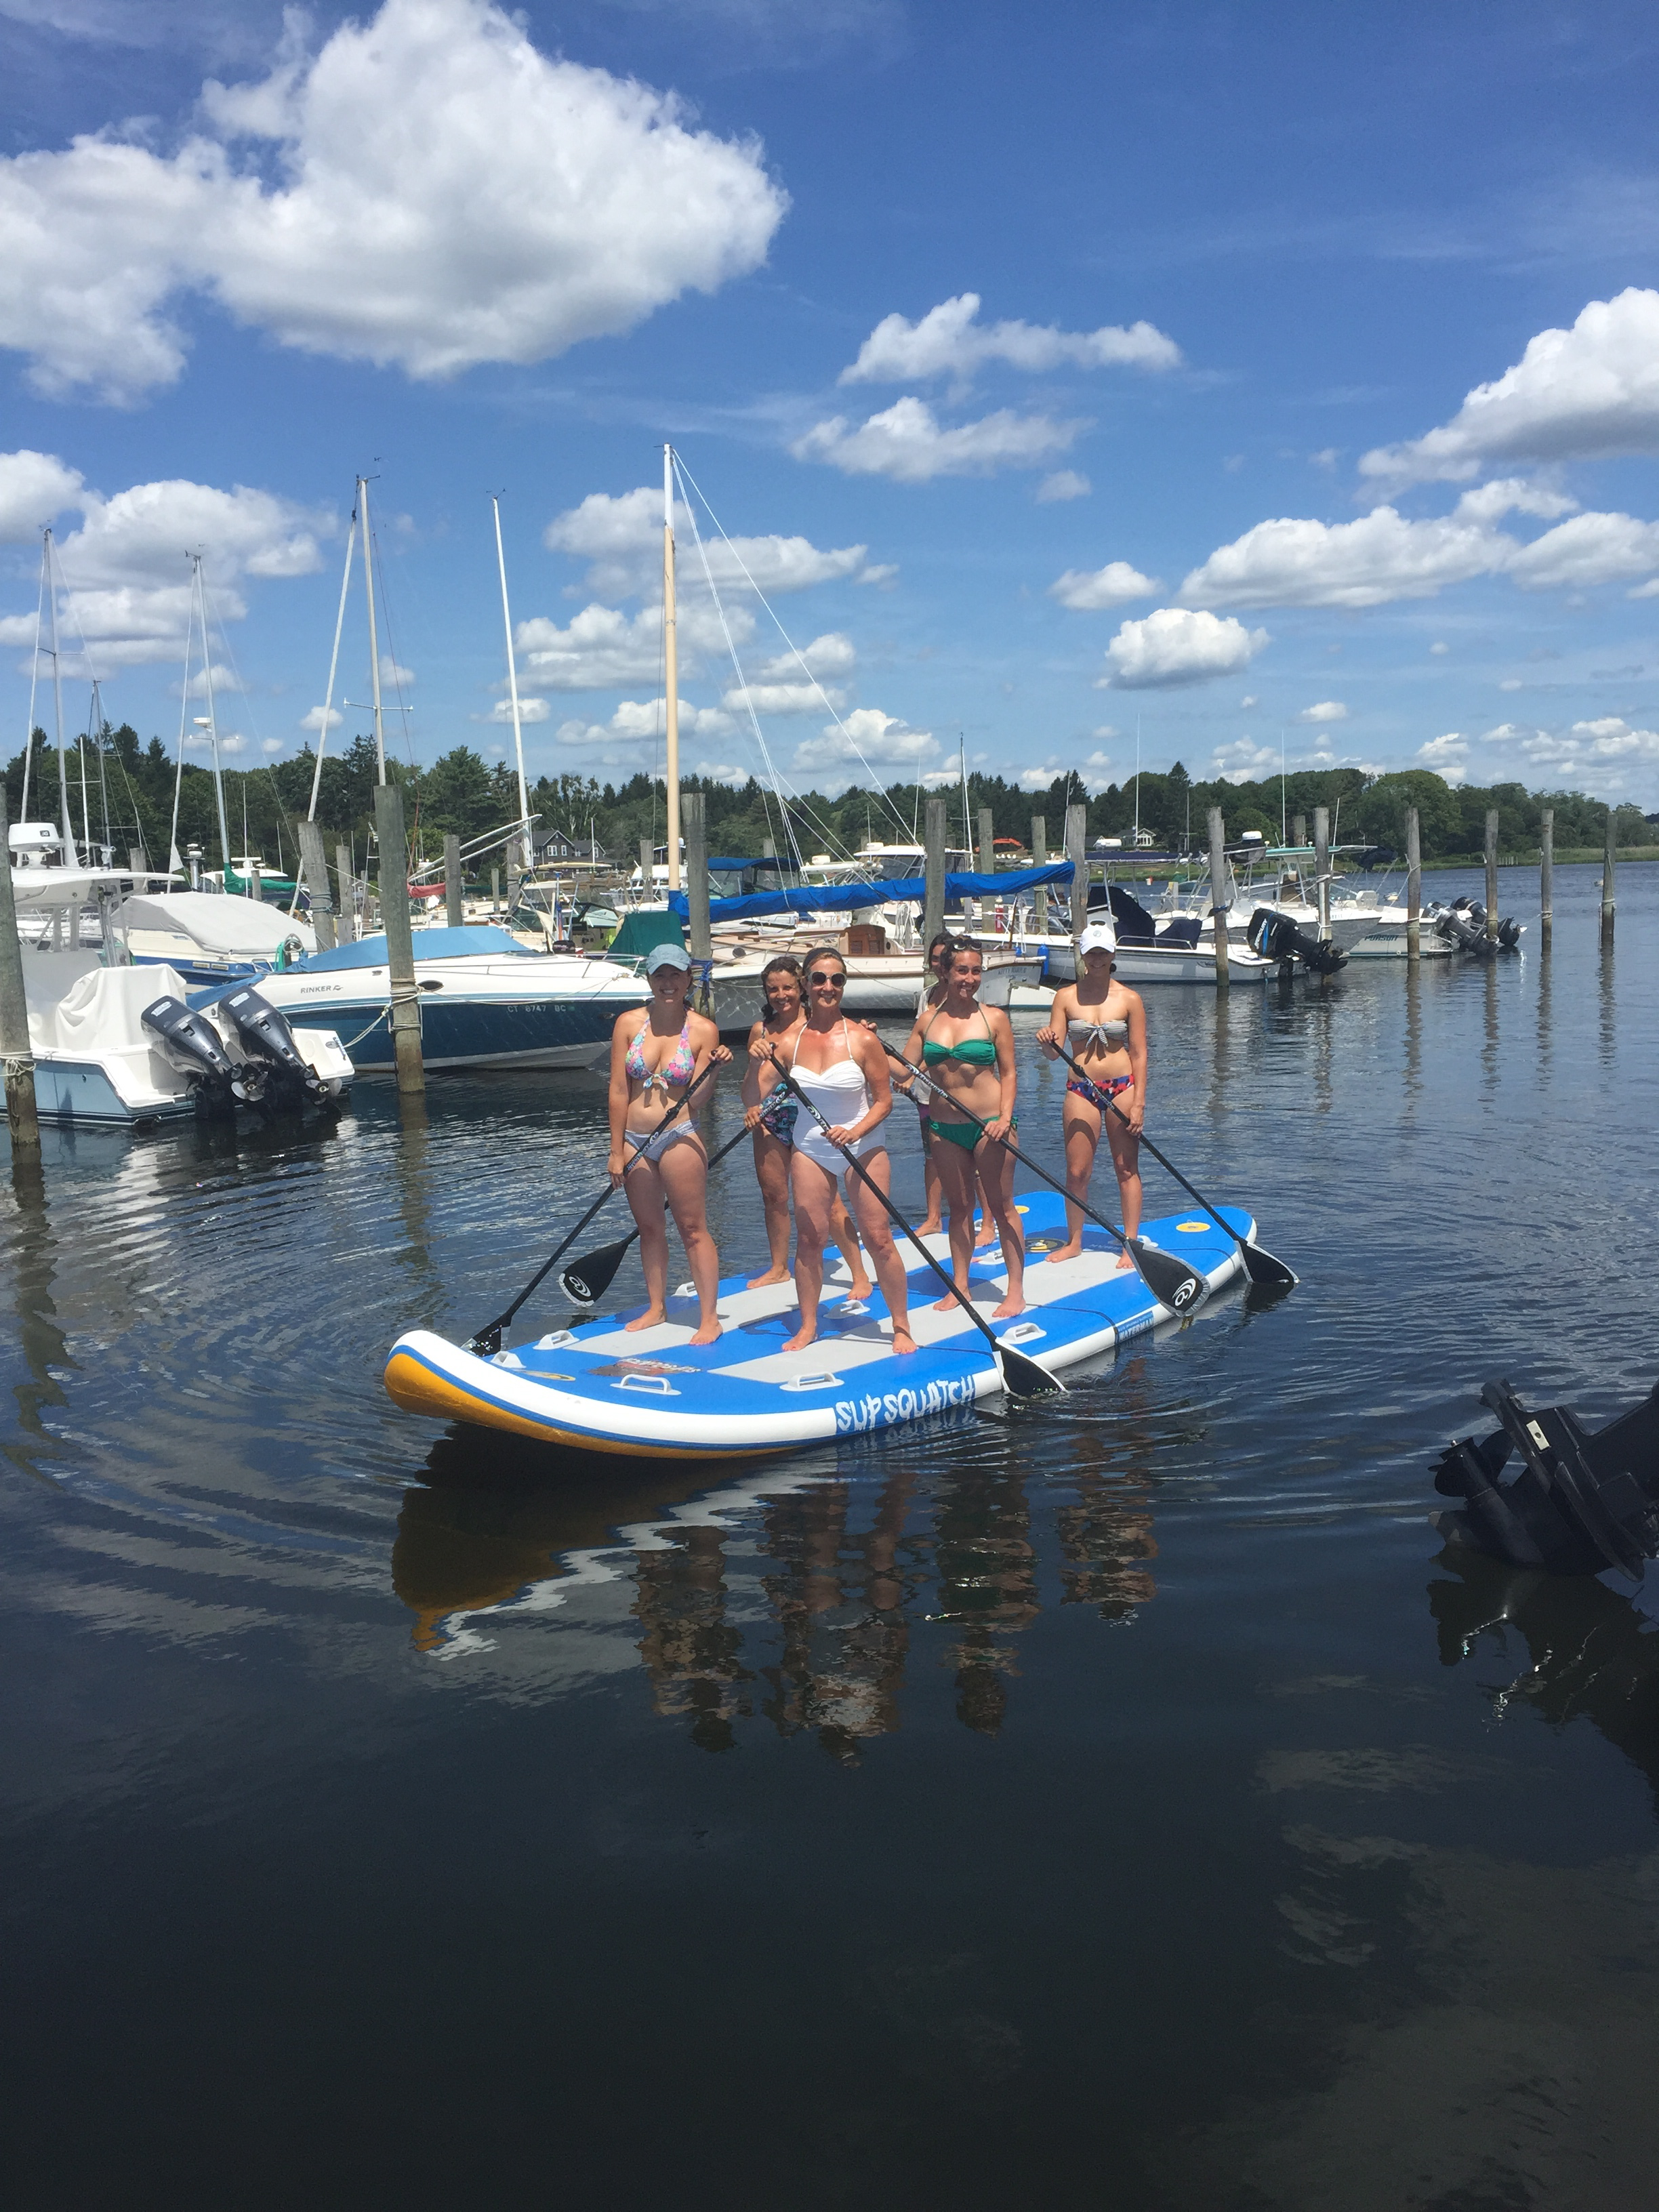 SUPSQUATCH - PARTY PADDLE BOARD